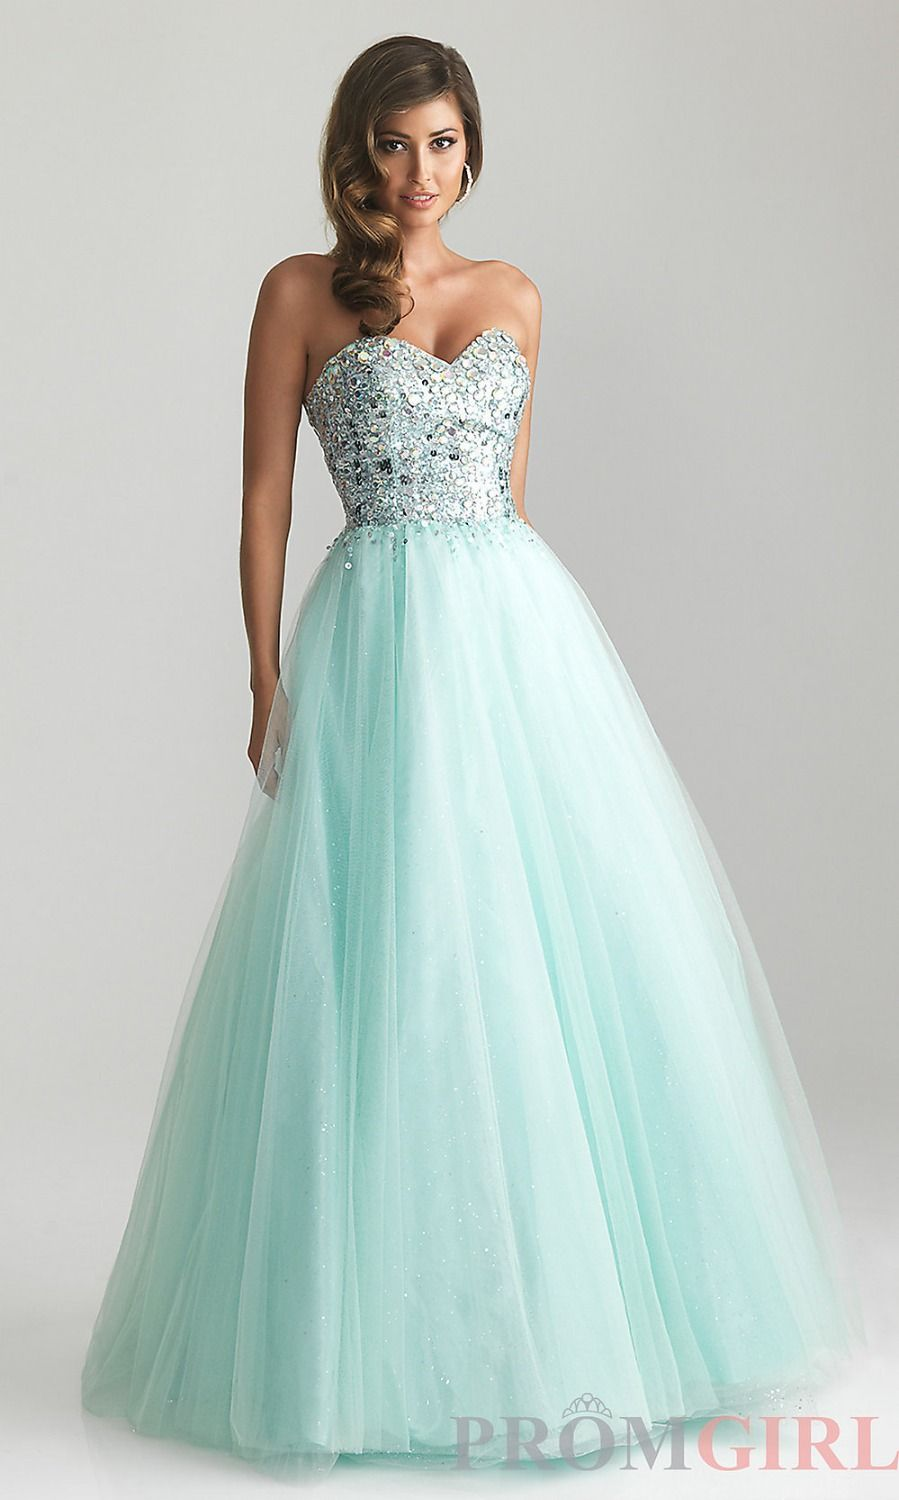 42ee82540e2 High Quality Long Mint Pink Beading Prom Dresses Gown Rhinestone Floor  Length Charming Sexy Lovely Ball Gown Corset Bodice 2014  142.00